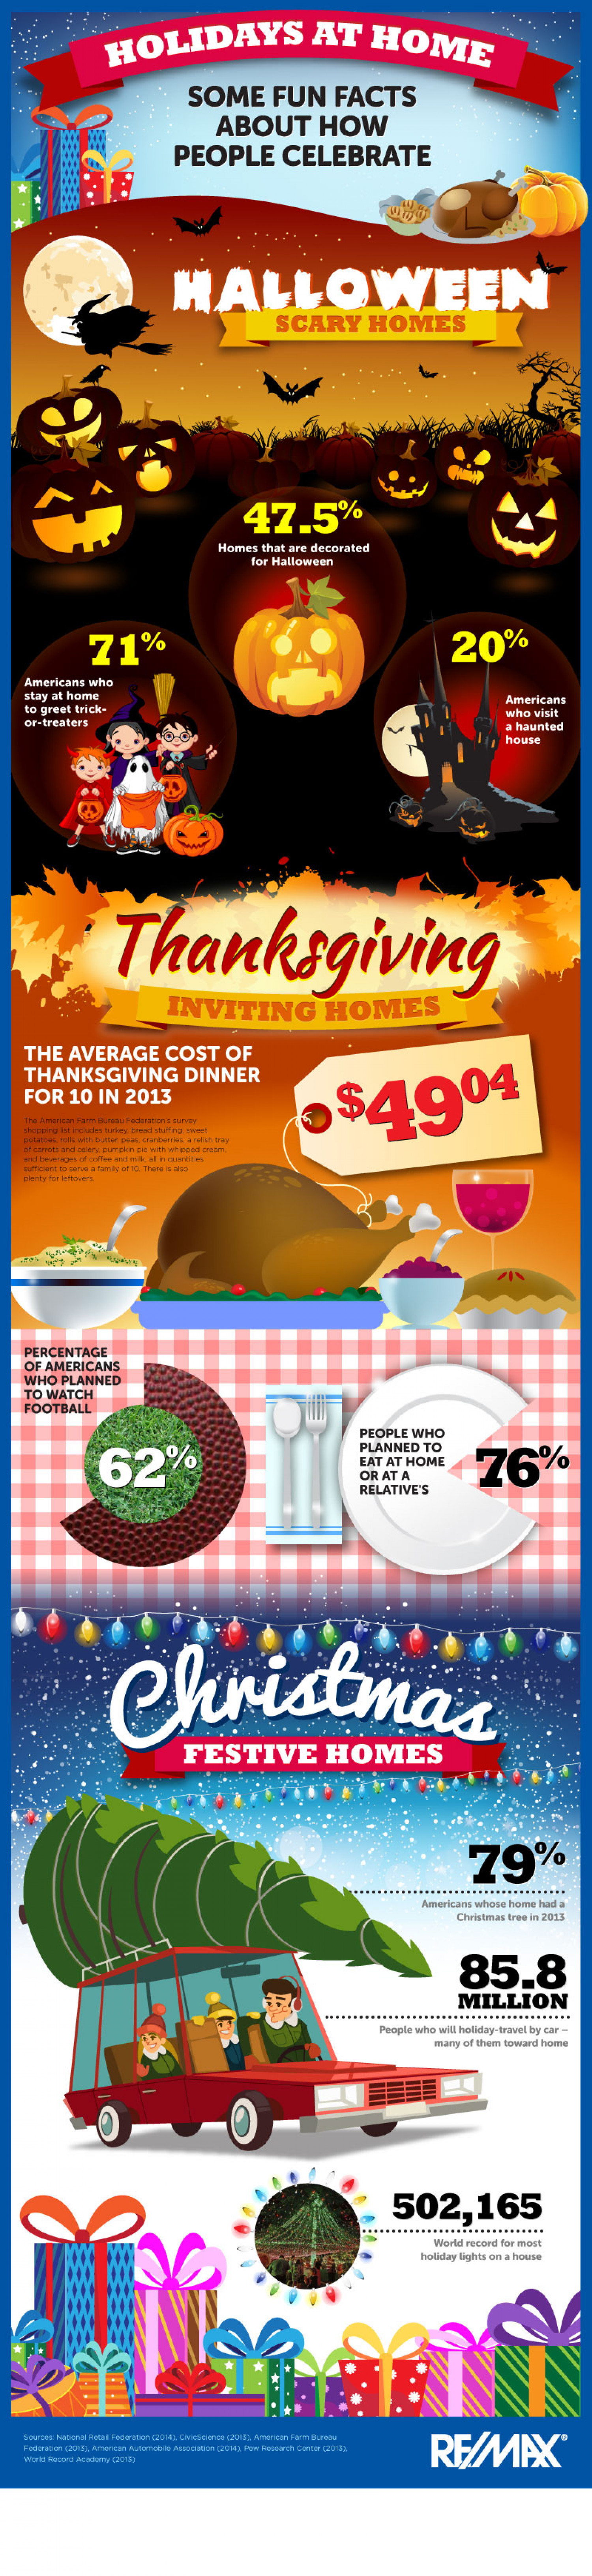 Holidays at Home Infographic